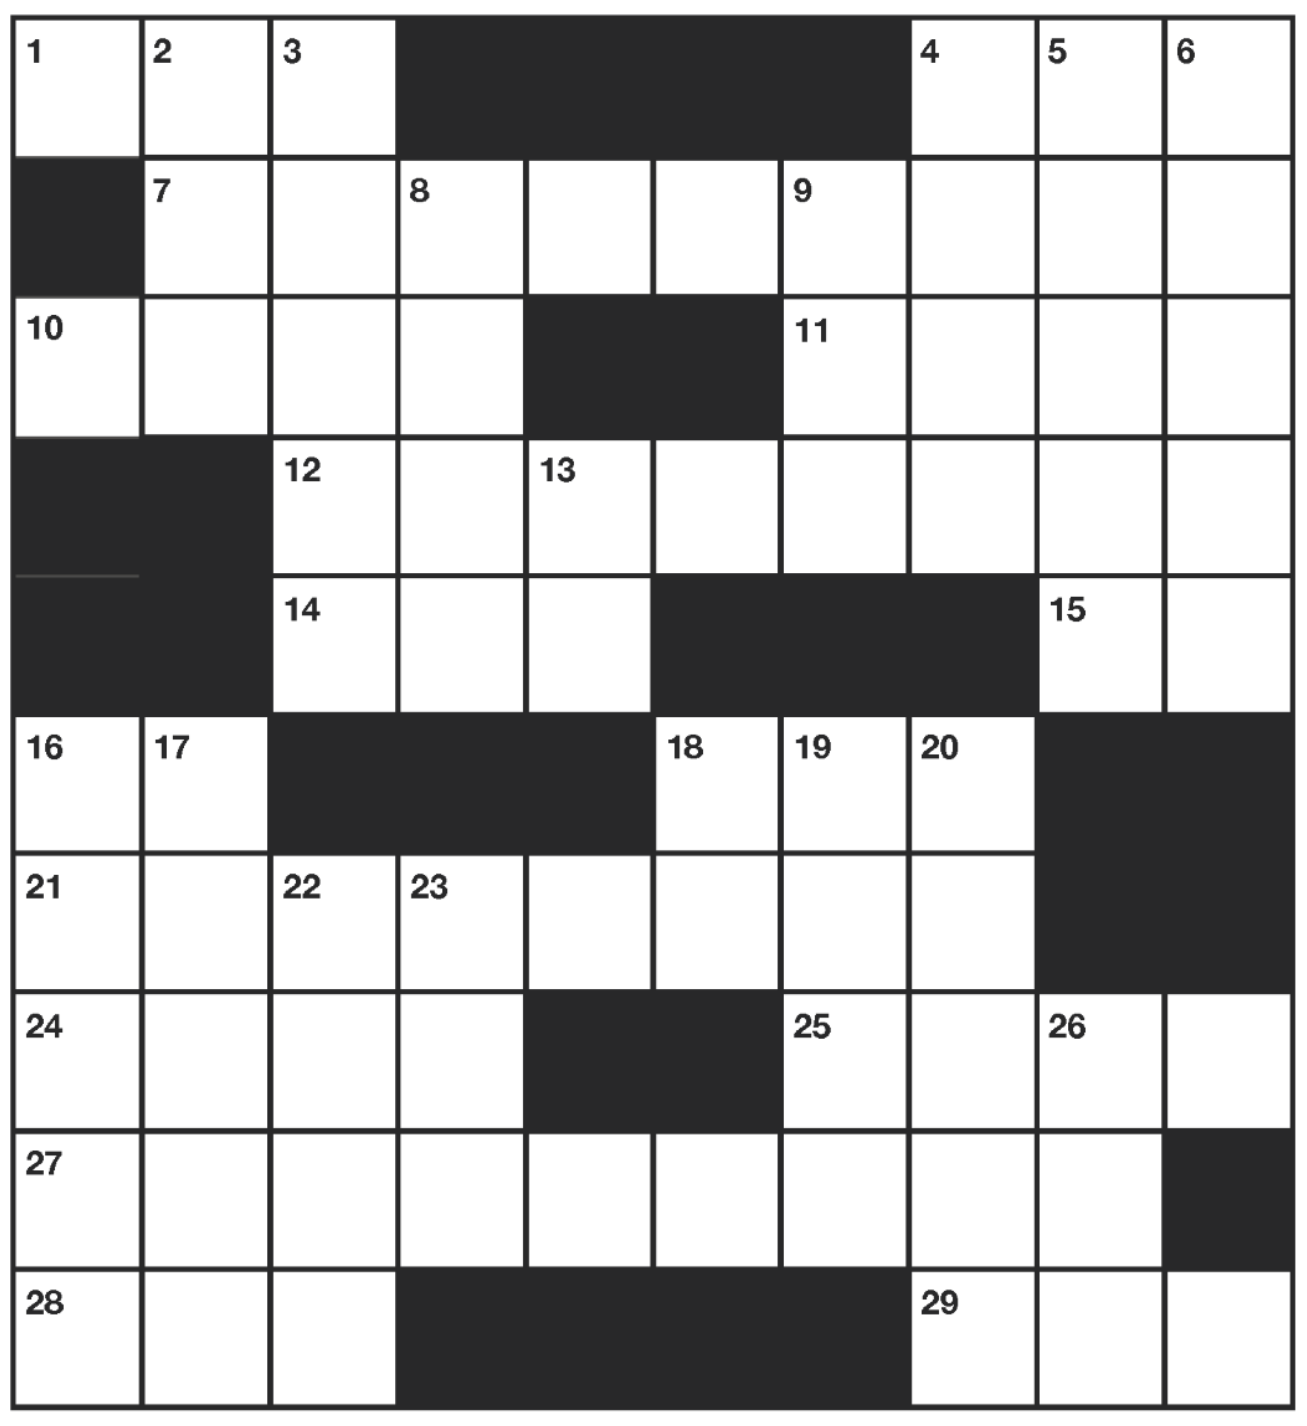 SEPTEMBER CATSKILL CROSSWORD  -- September 2020